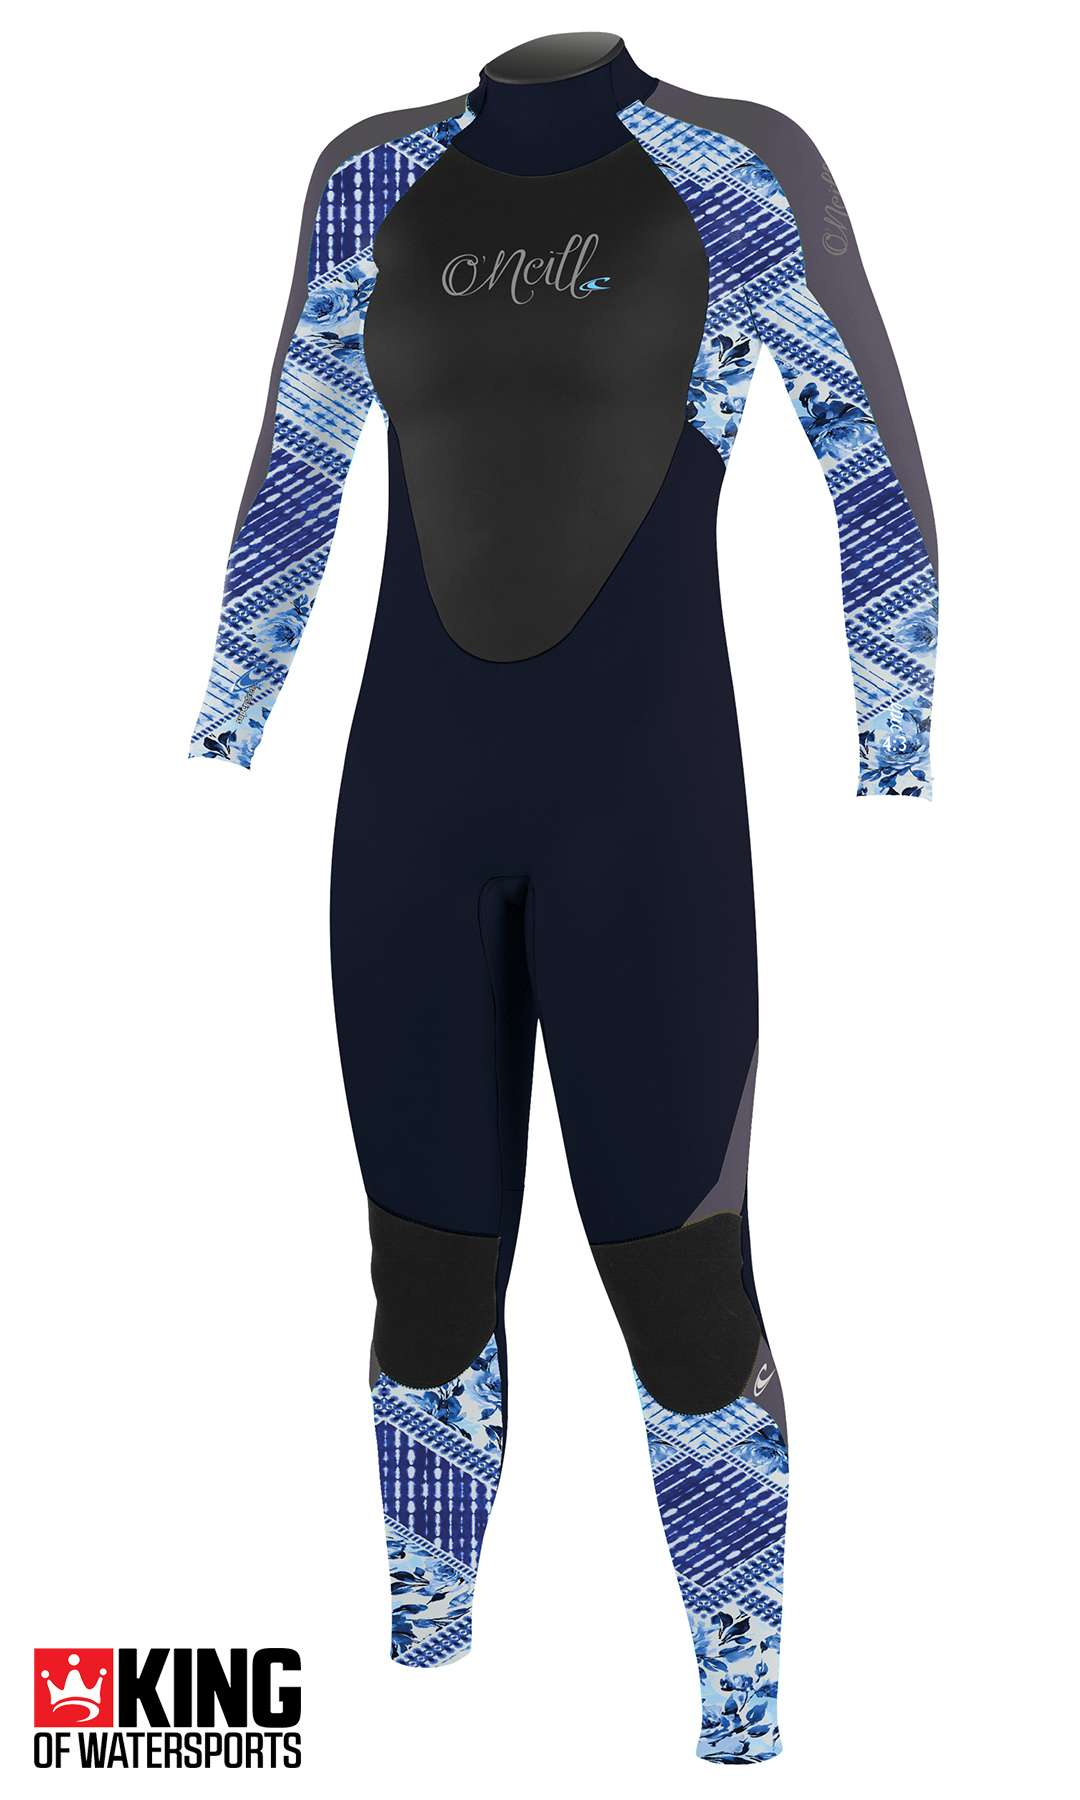 238f275a10 O Neill Womens Epic 3 2 Wetsuit 2018